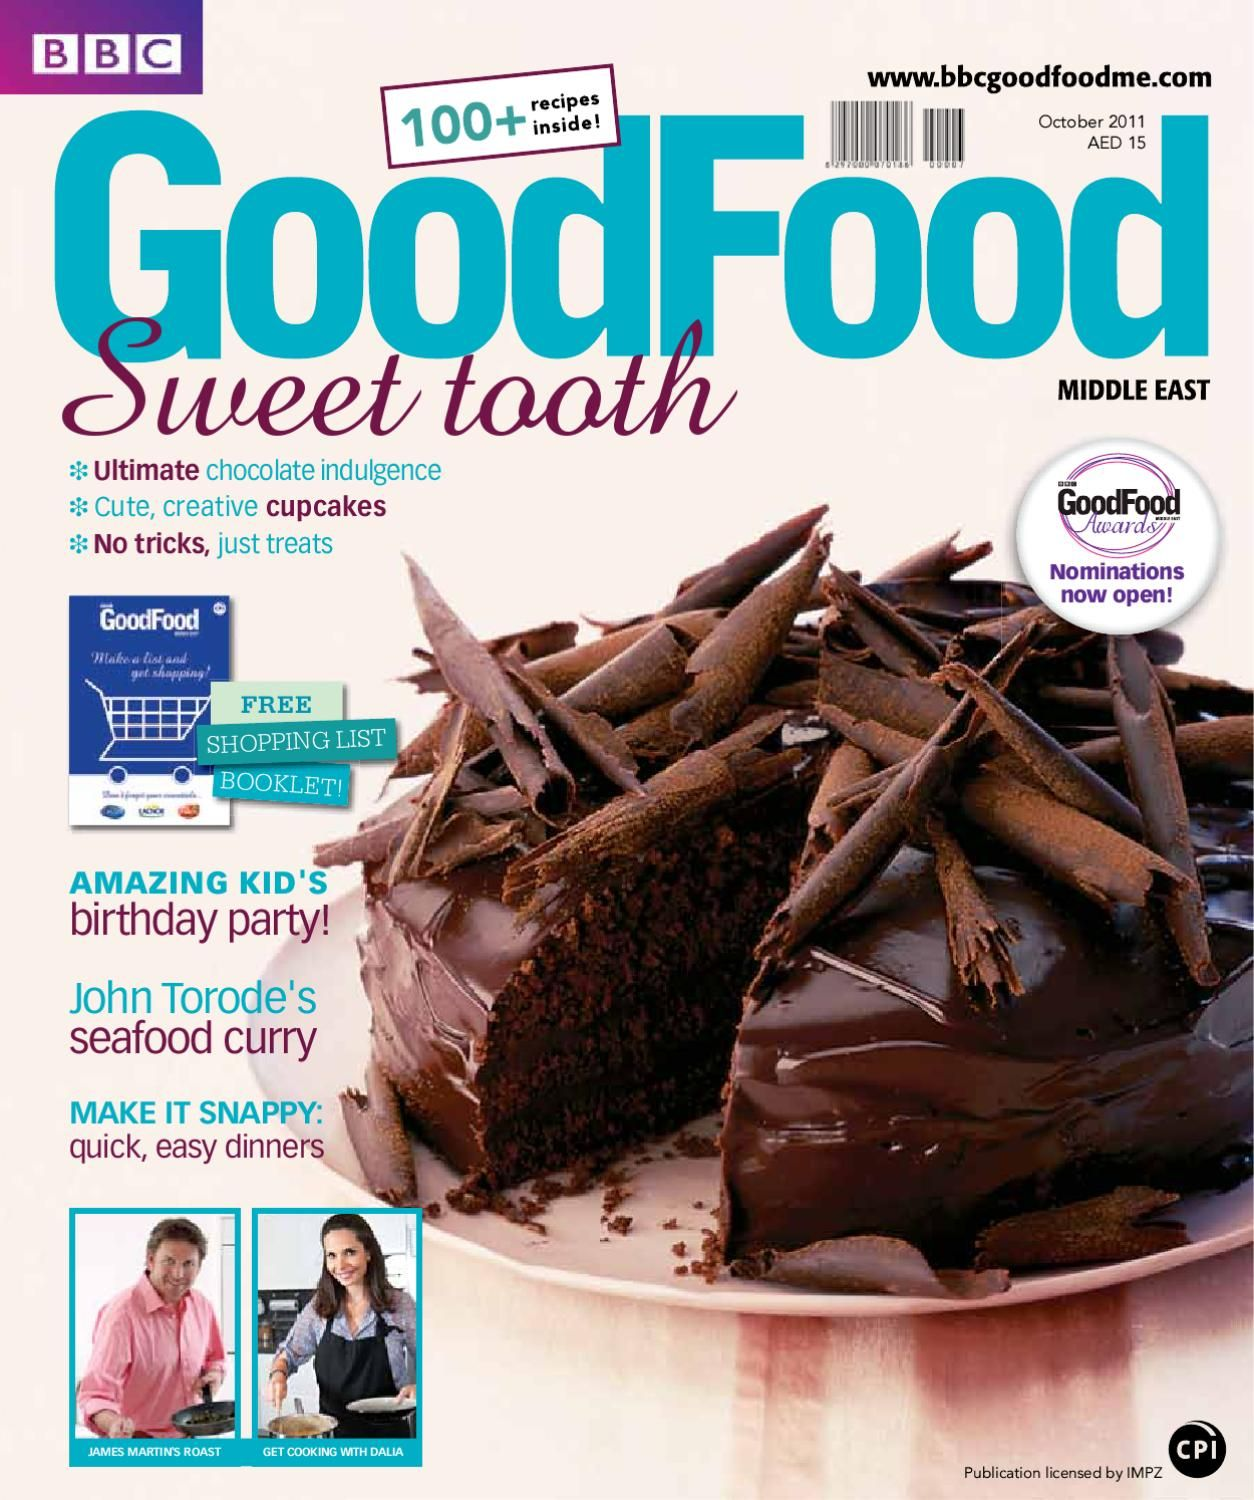 Bbc good food middle east magazine everyday dishes dishes and cucina bbc good food middle east magazine forumfinder Gallery